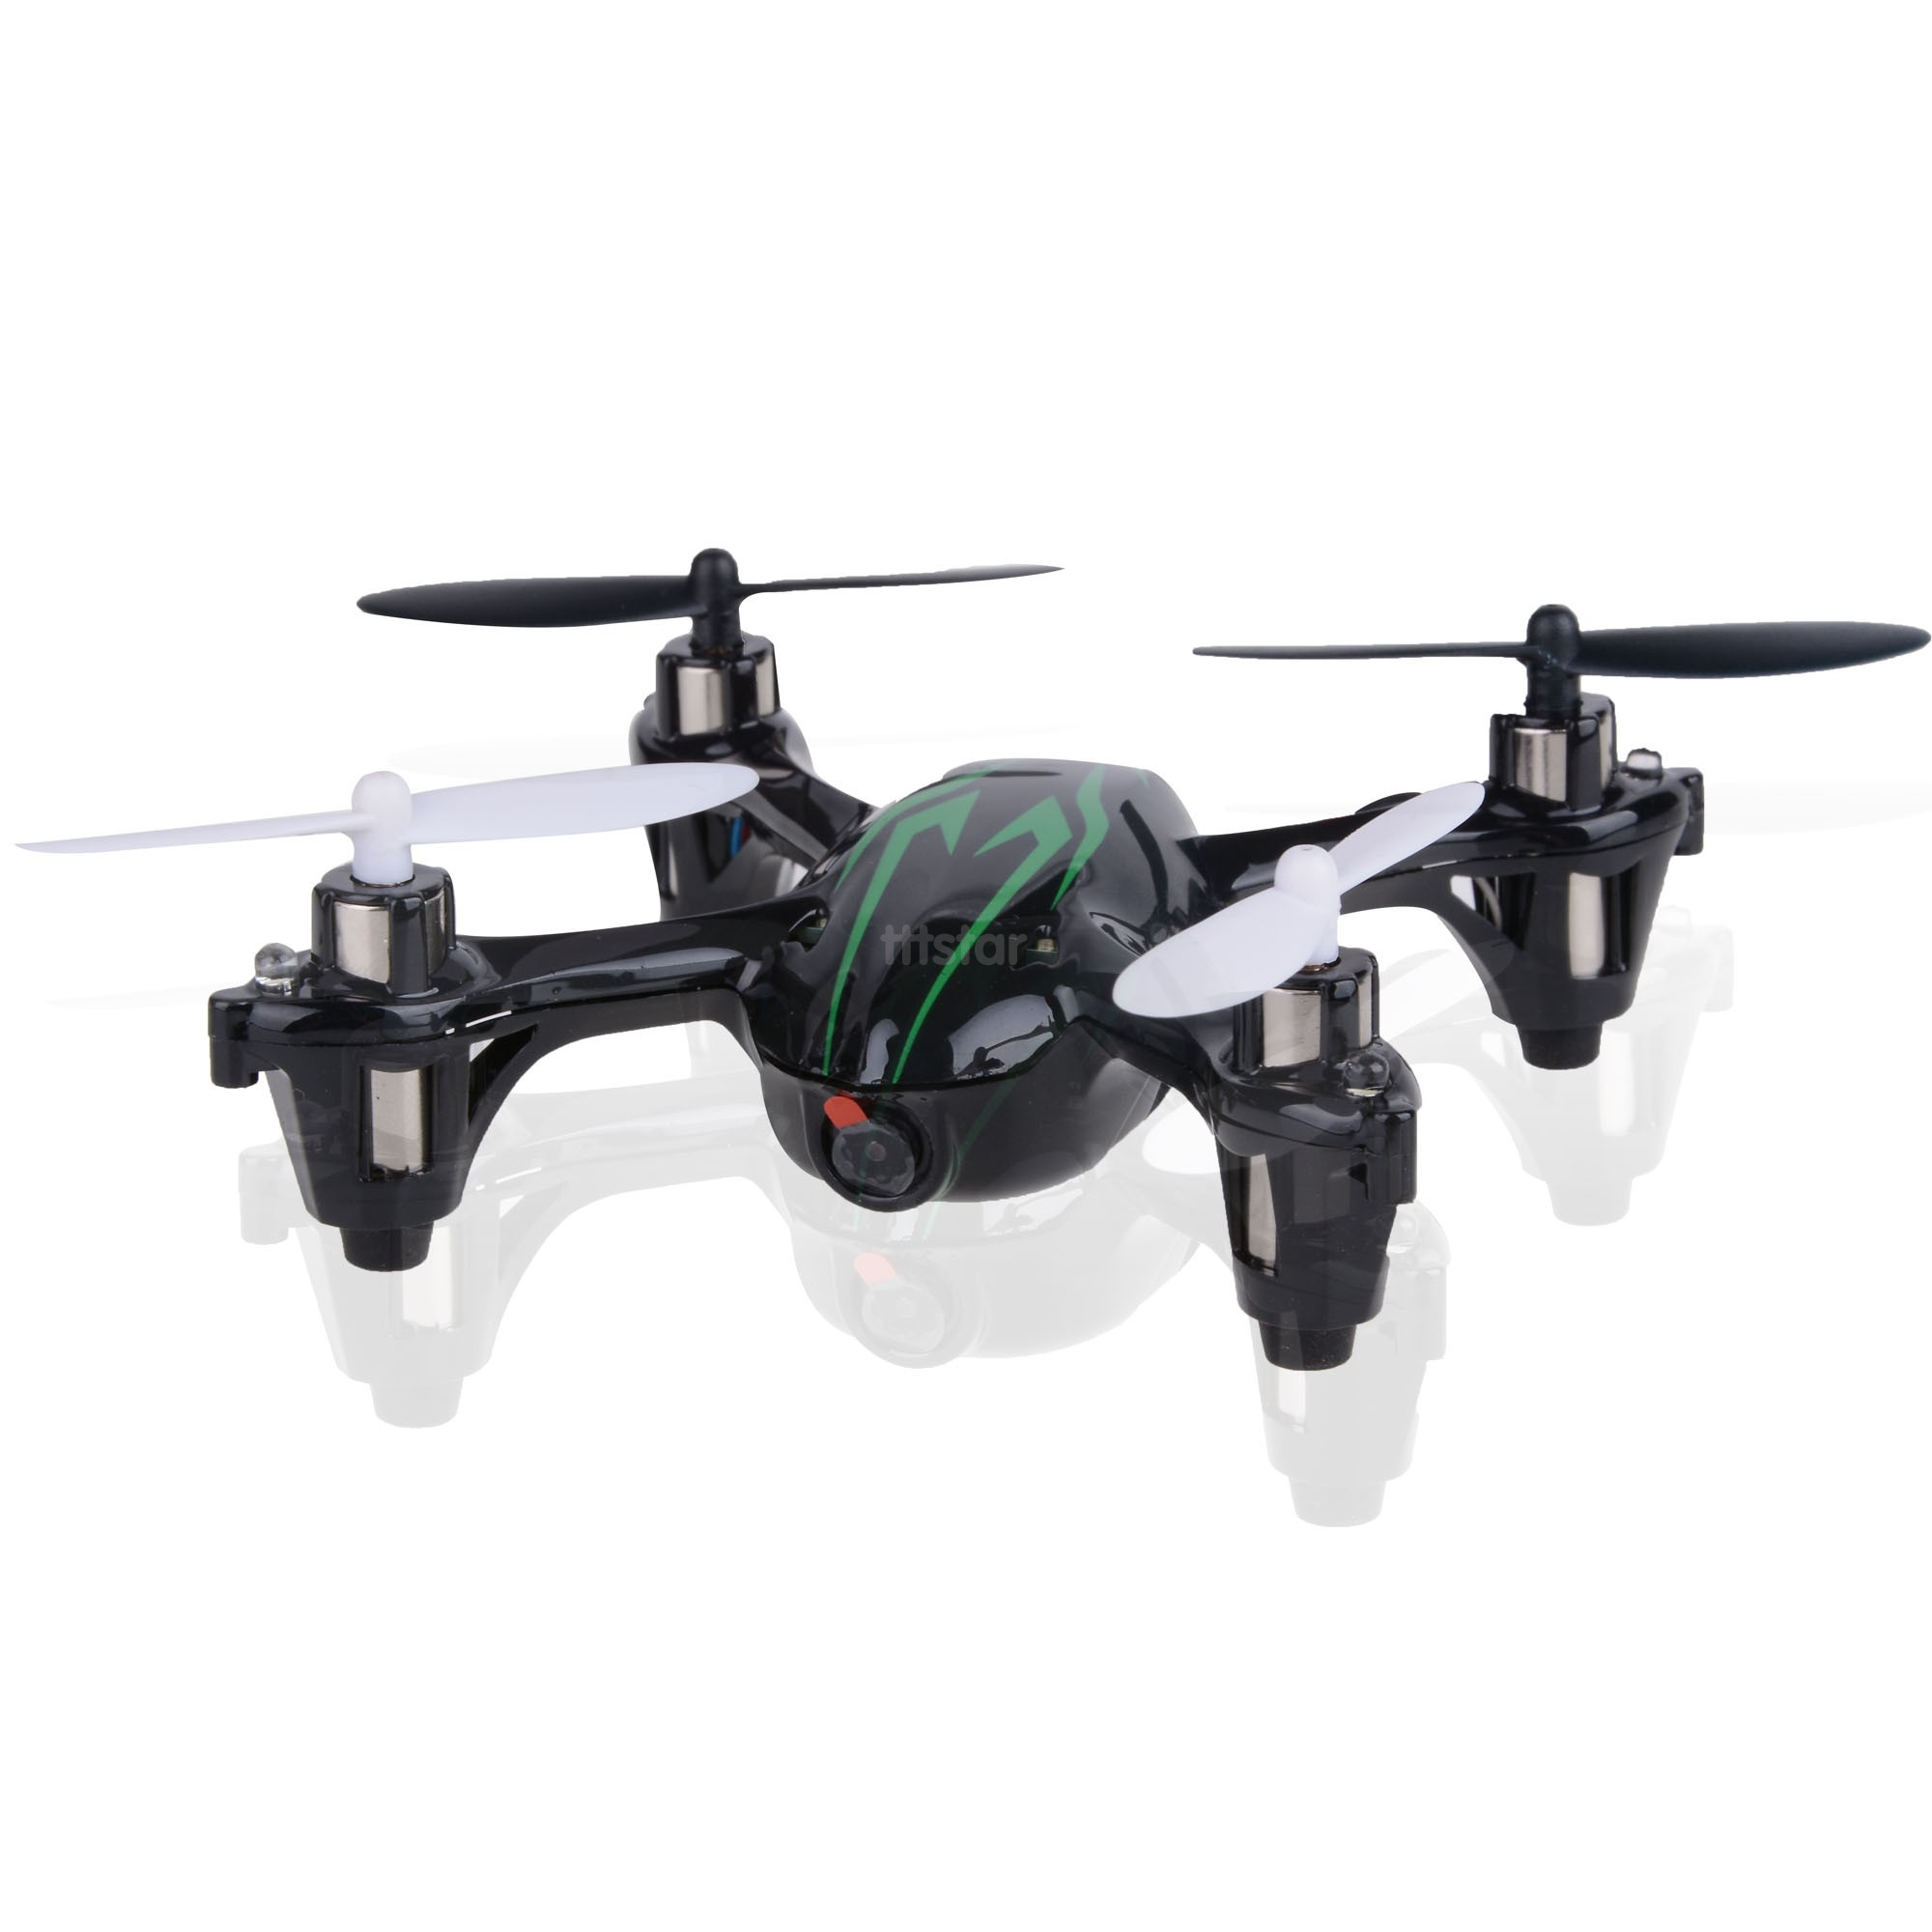 Hot Sale New Version X6 H107C 2.4G 4CH RC Quadcopter With Camera RTF Helicopter Video Record #6(China (Mainland))